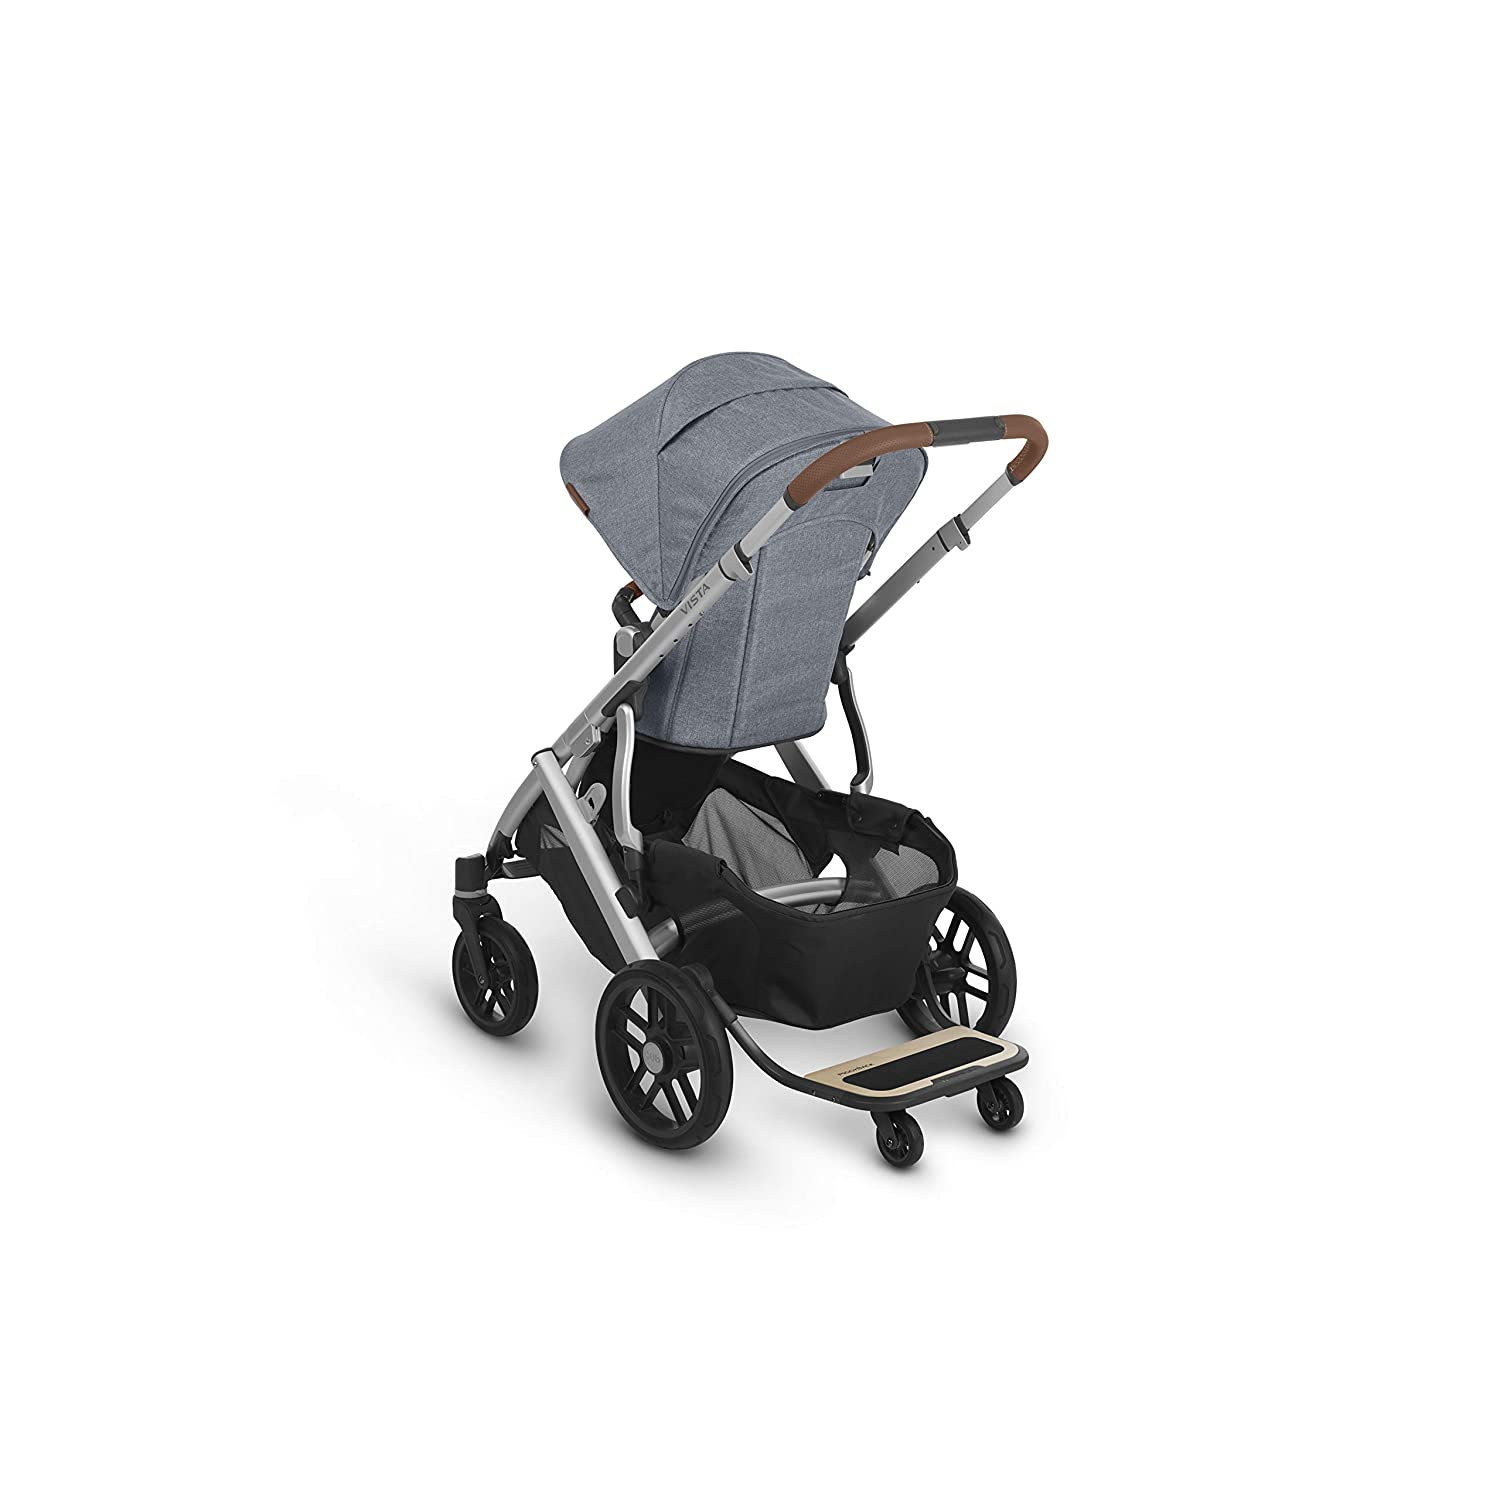 + Piggyback for Vista /& Vista V2 Deep Sea//Silver//Chestnut Leather Finn UPPAbaby Vista V2 Stroller